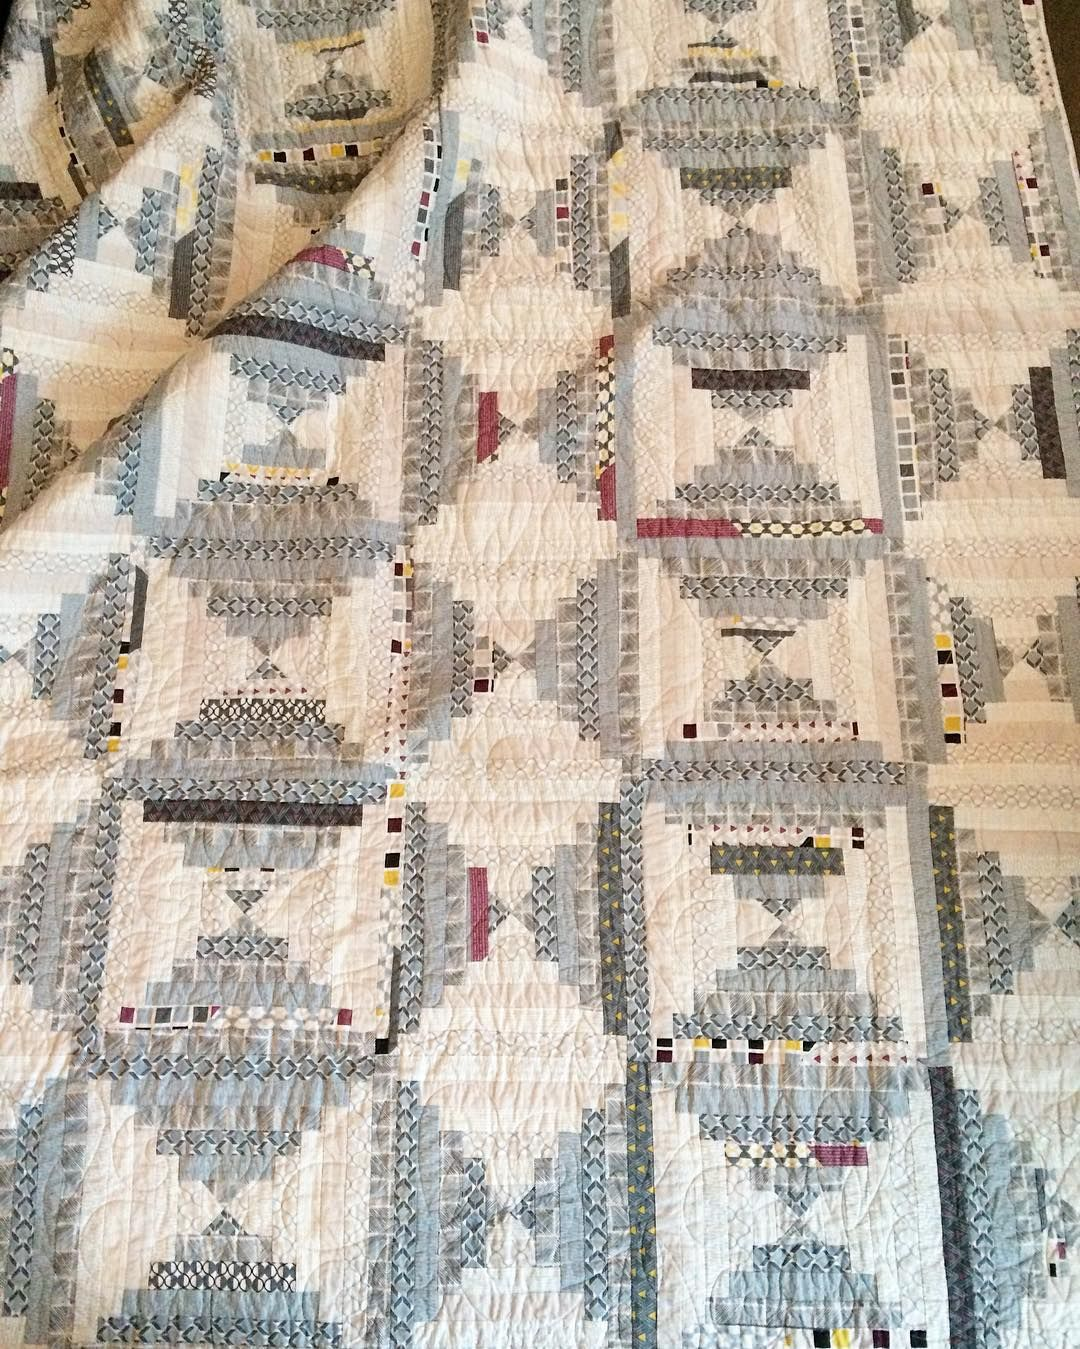 A better pic of my #i❤️logcabins quilt! It's called Twilight and made with my #chicneutralsfabrics collection. It's a super soft and snugly quilt - perfect for our cold mornings here! There's 15 more beautiful log cabin quilts in the book, including inspiring projects by friends ->> @fatquartershop @diaryofaquilter @happyquiltingmc @modarosie @quiltstory @blueisbleu @zenchicmoda @modalissa @rubybluequilts @martingaletpp